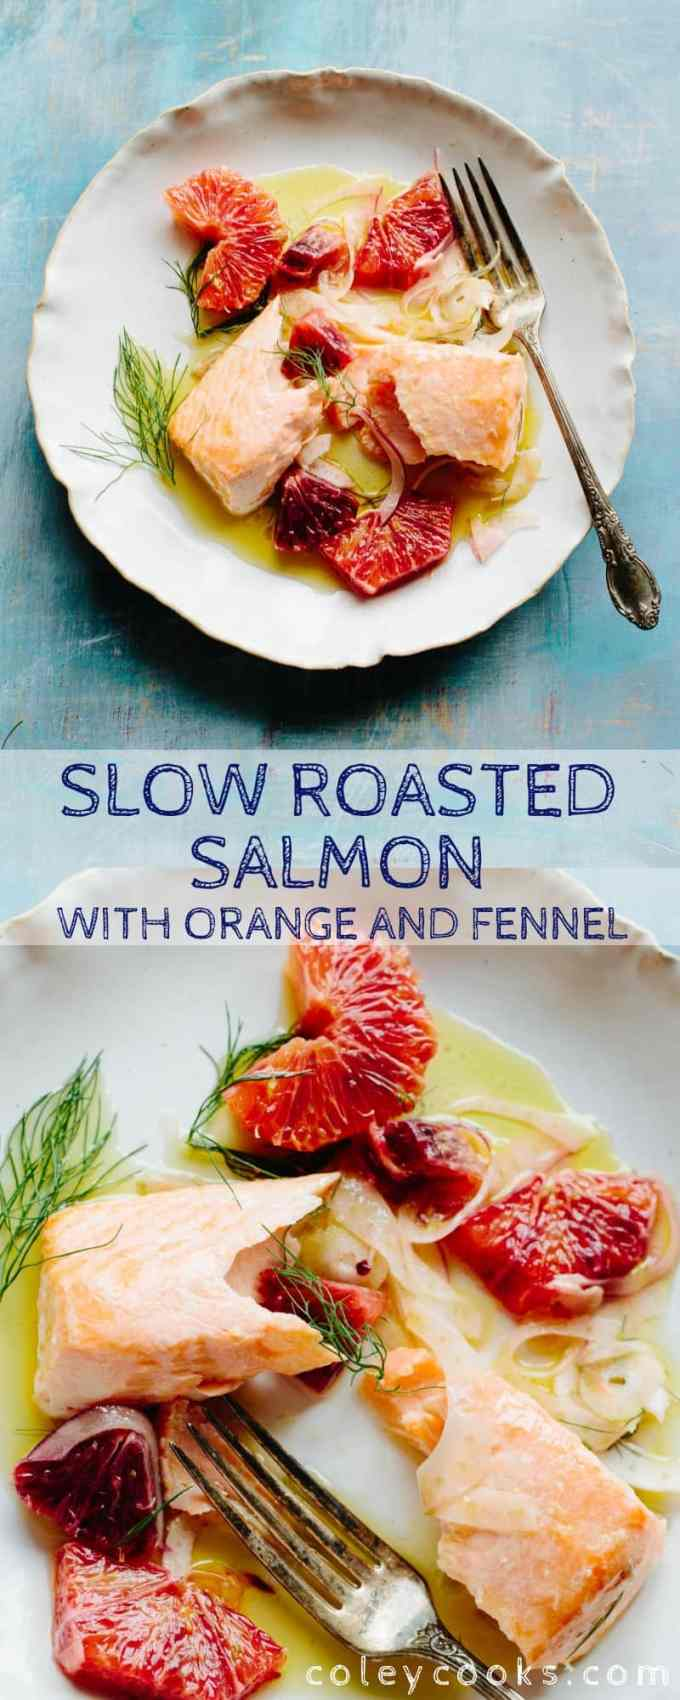 SLOW ROASTED SALMON with ORANGE + FENNEL | Succulent, buttery salmon cooked low and slow, then finished with a crisp and refreshing fennel orange salad. #easy #salmon #orange #fennel #roasted | ColeyCooks.com